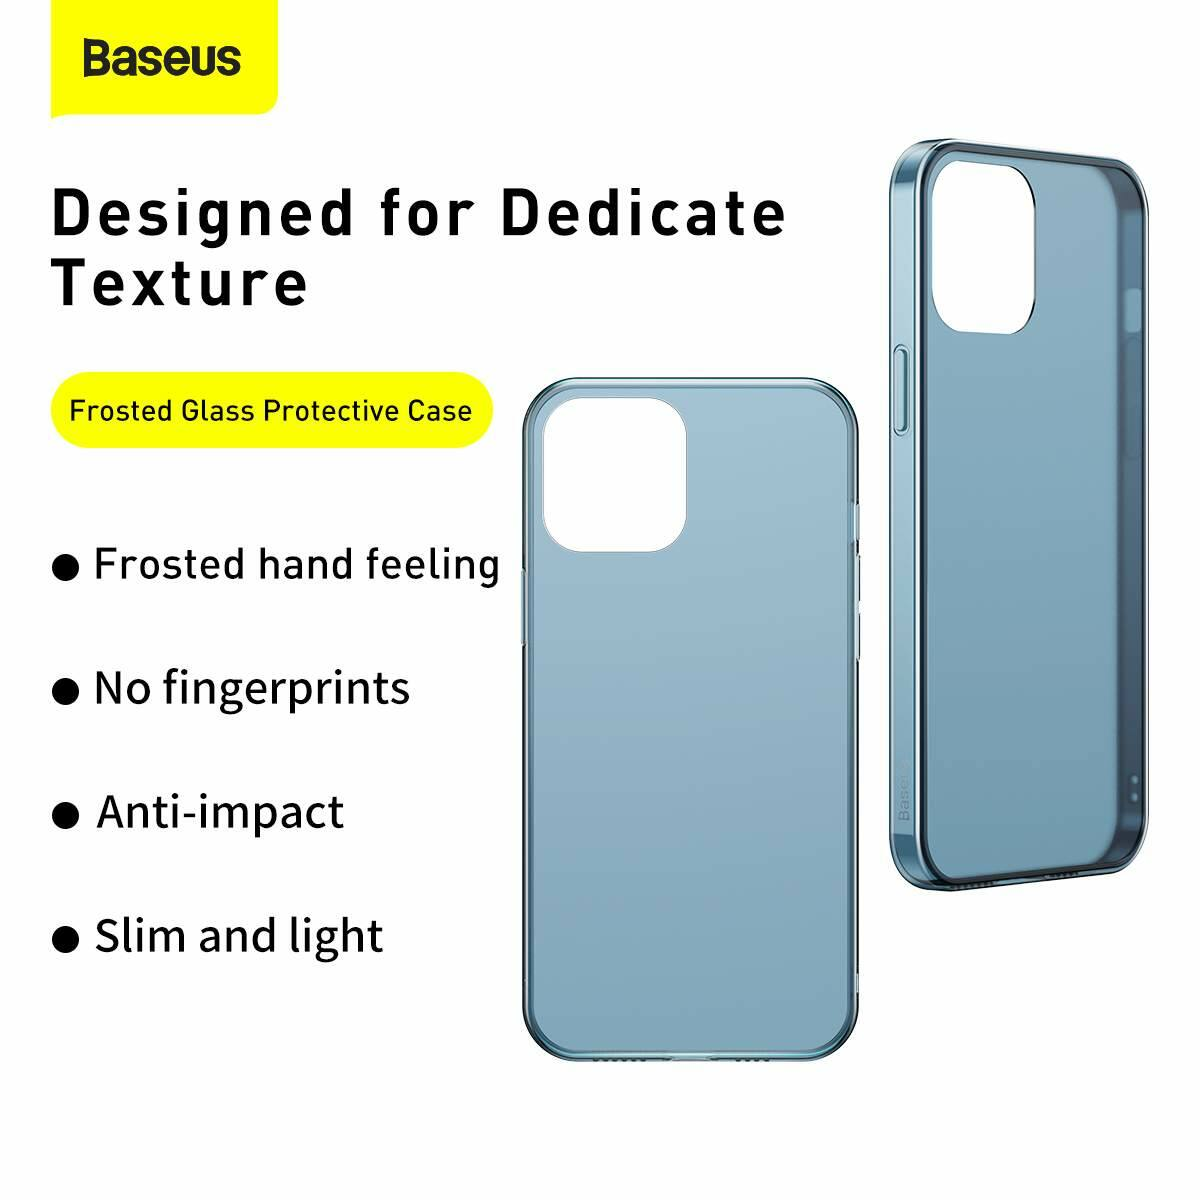 Baseus iPhone 12/12 Pro tok, Frosted Glass, fekete (WIAPIPH61P-WS01)